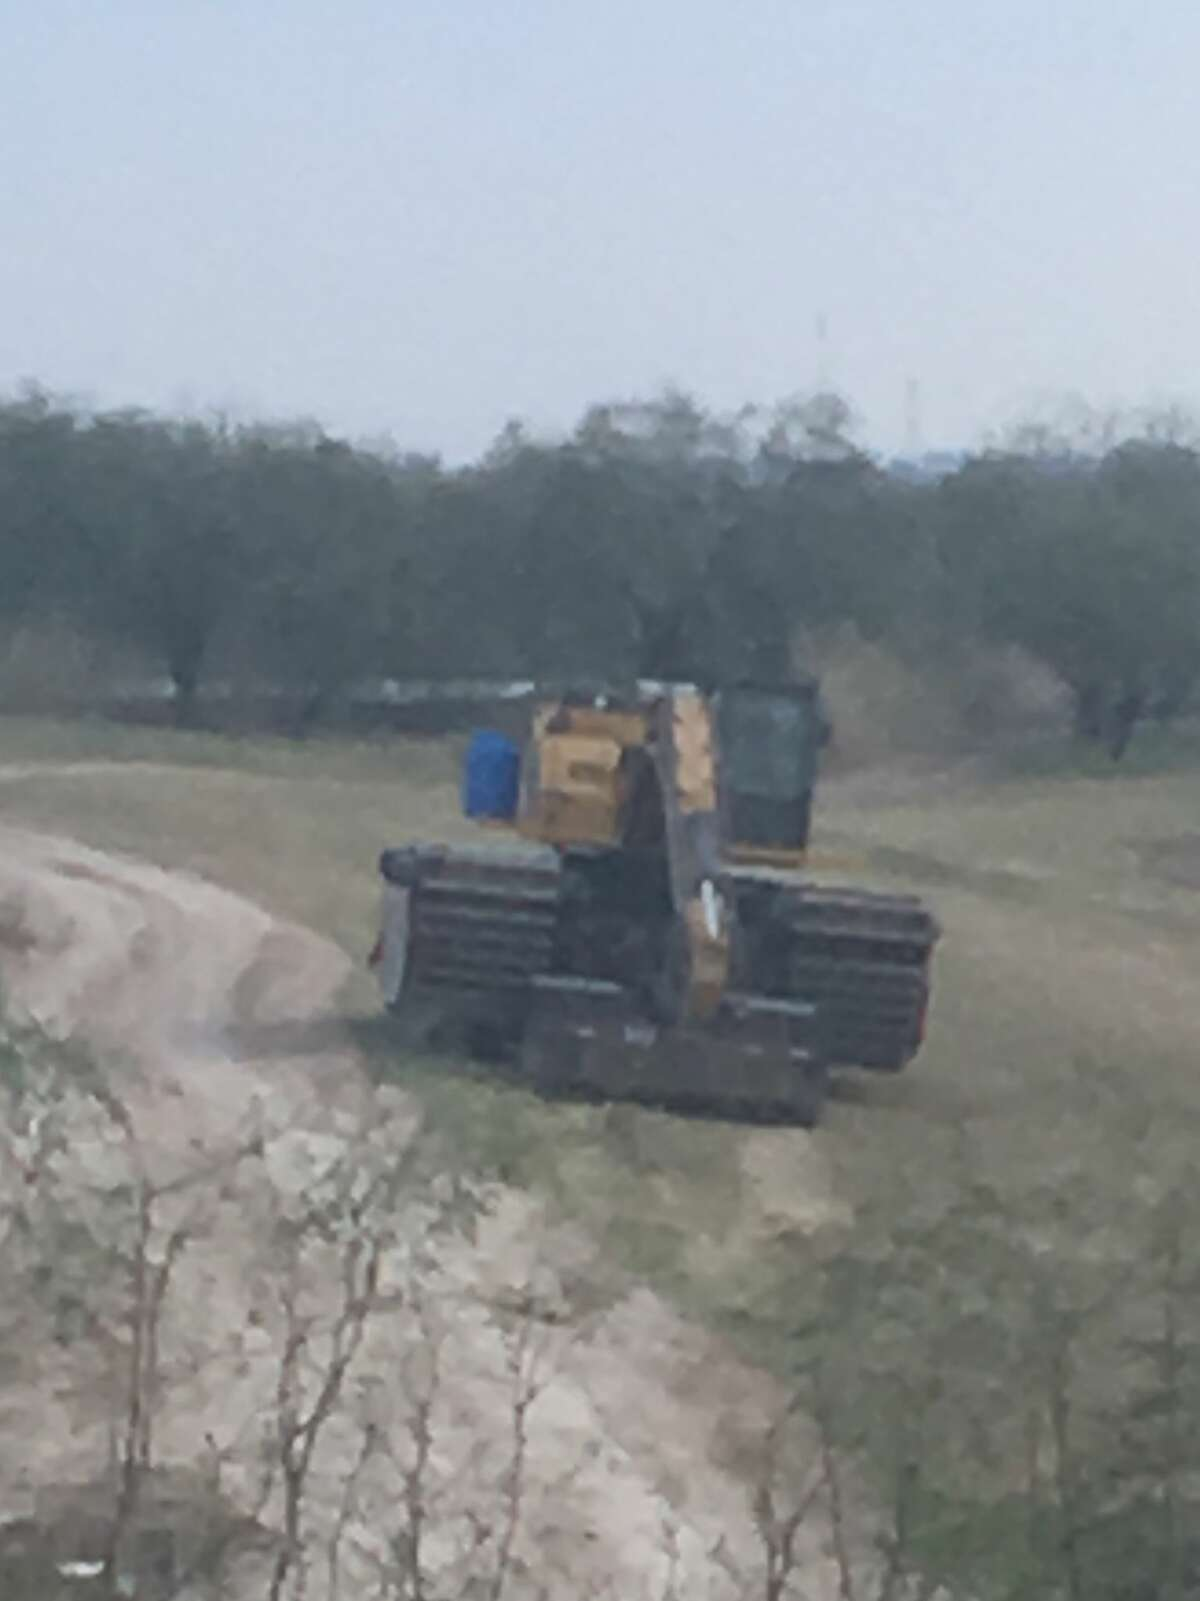 Lorri Burnett photographed equipment used for the beginnings of border wall construction at the National Butterfly Center on Sunday, Feb. 3, 2019.